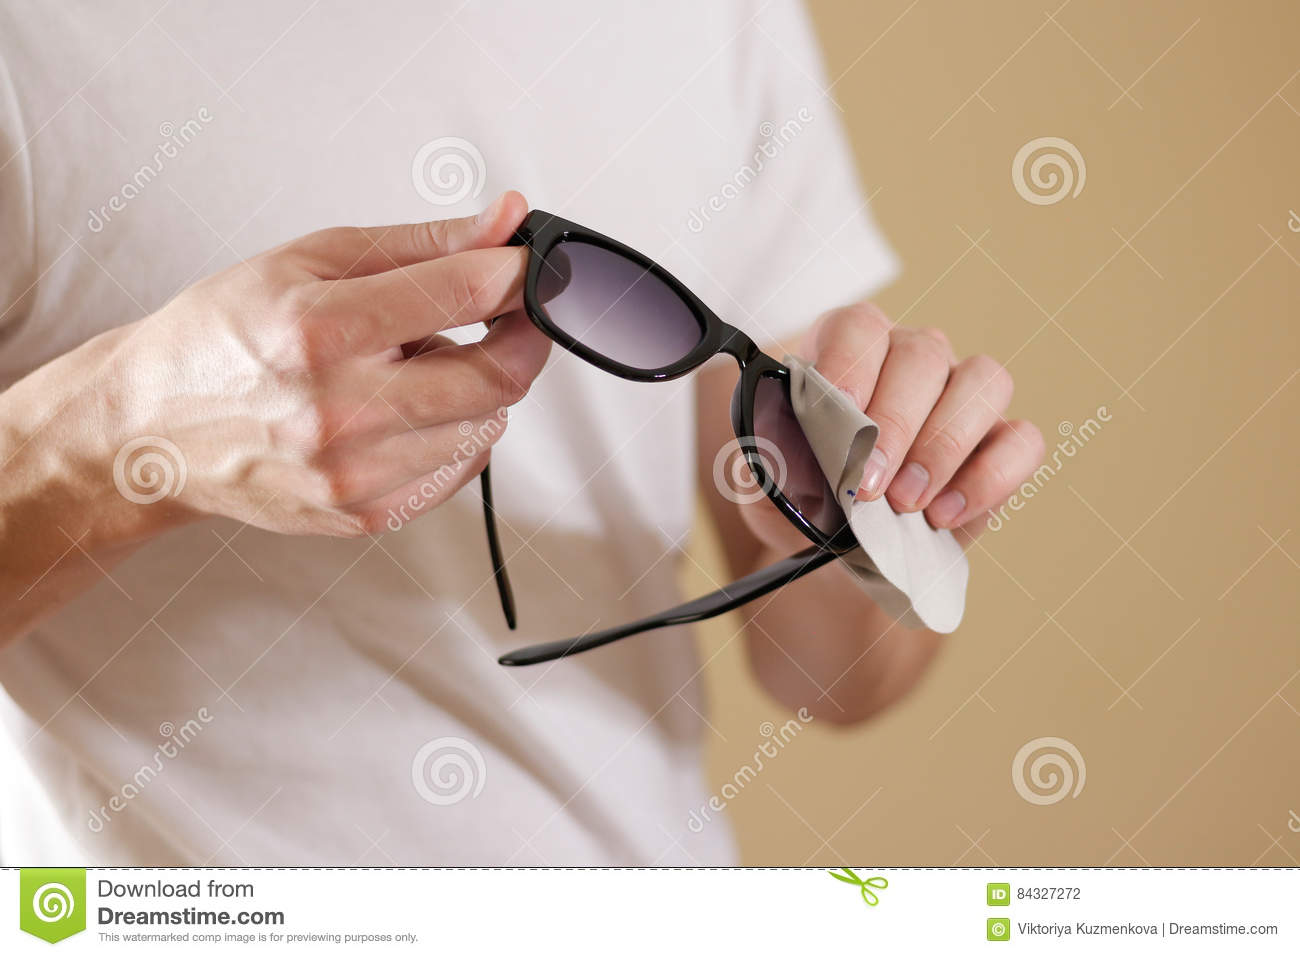 534a9792df Man in white t shirt hand cleaning black sun glasses lens with background